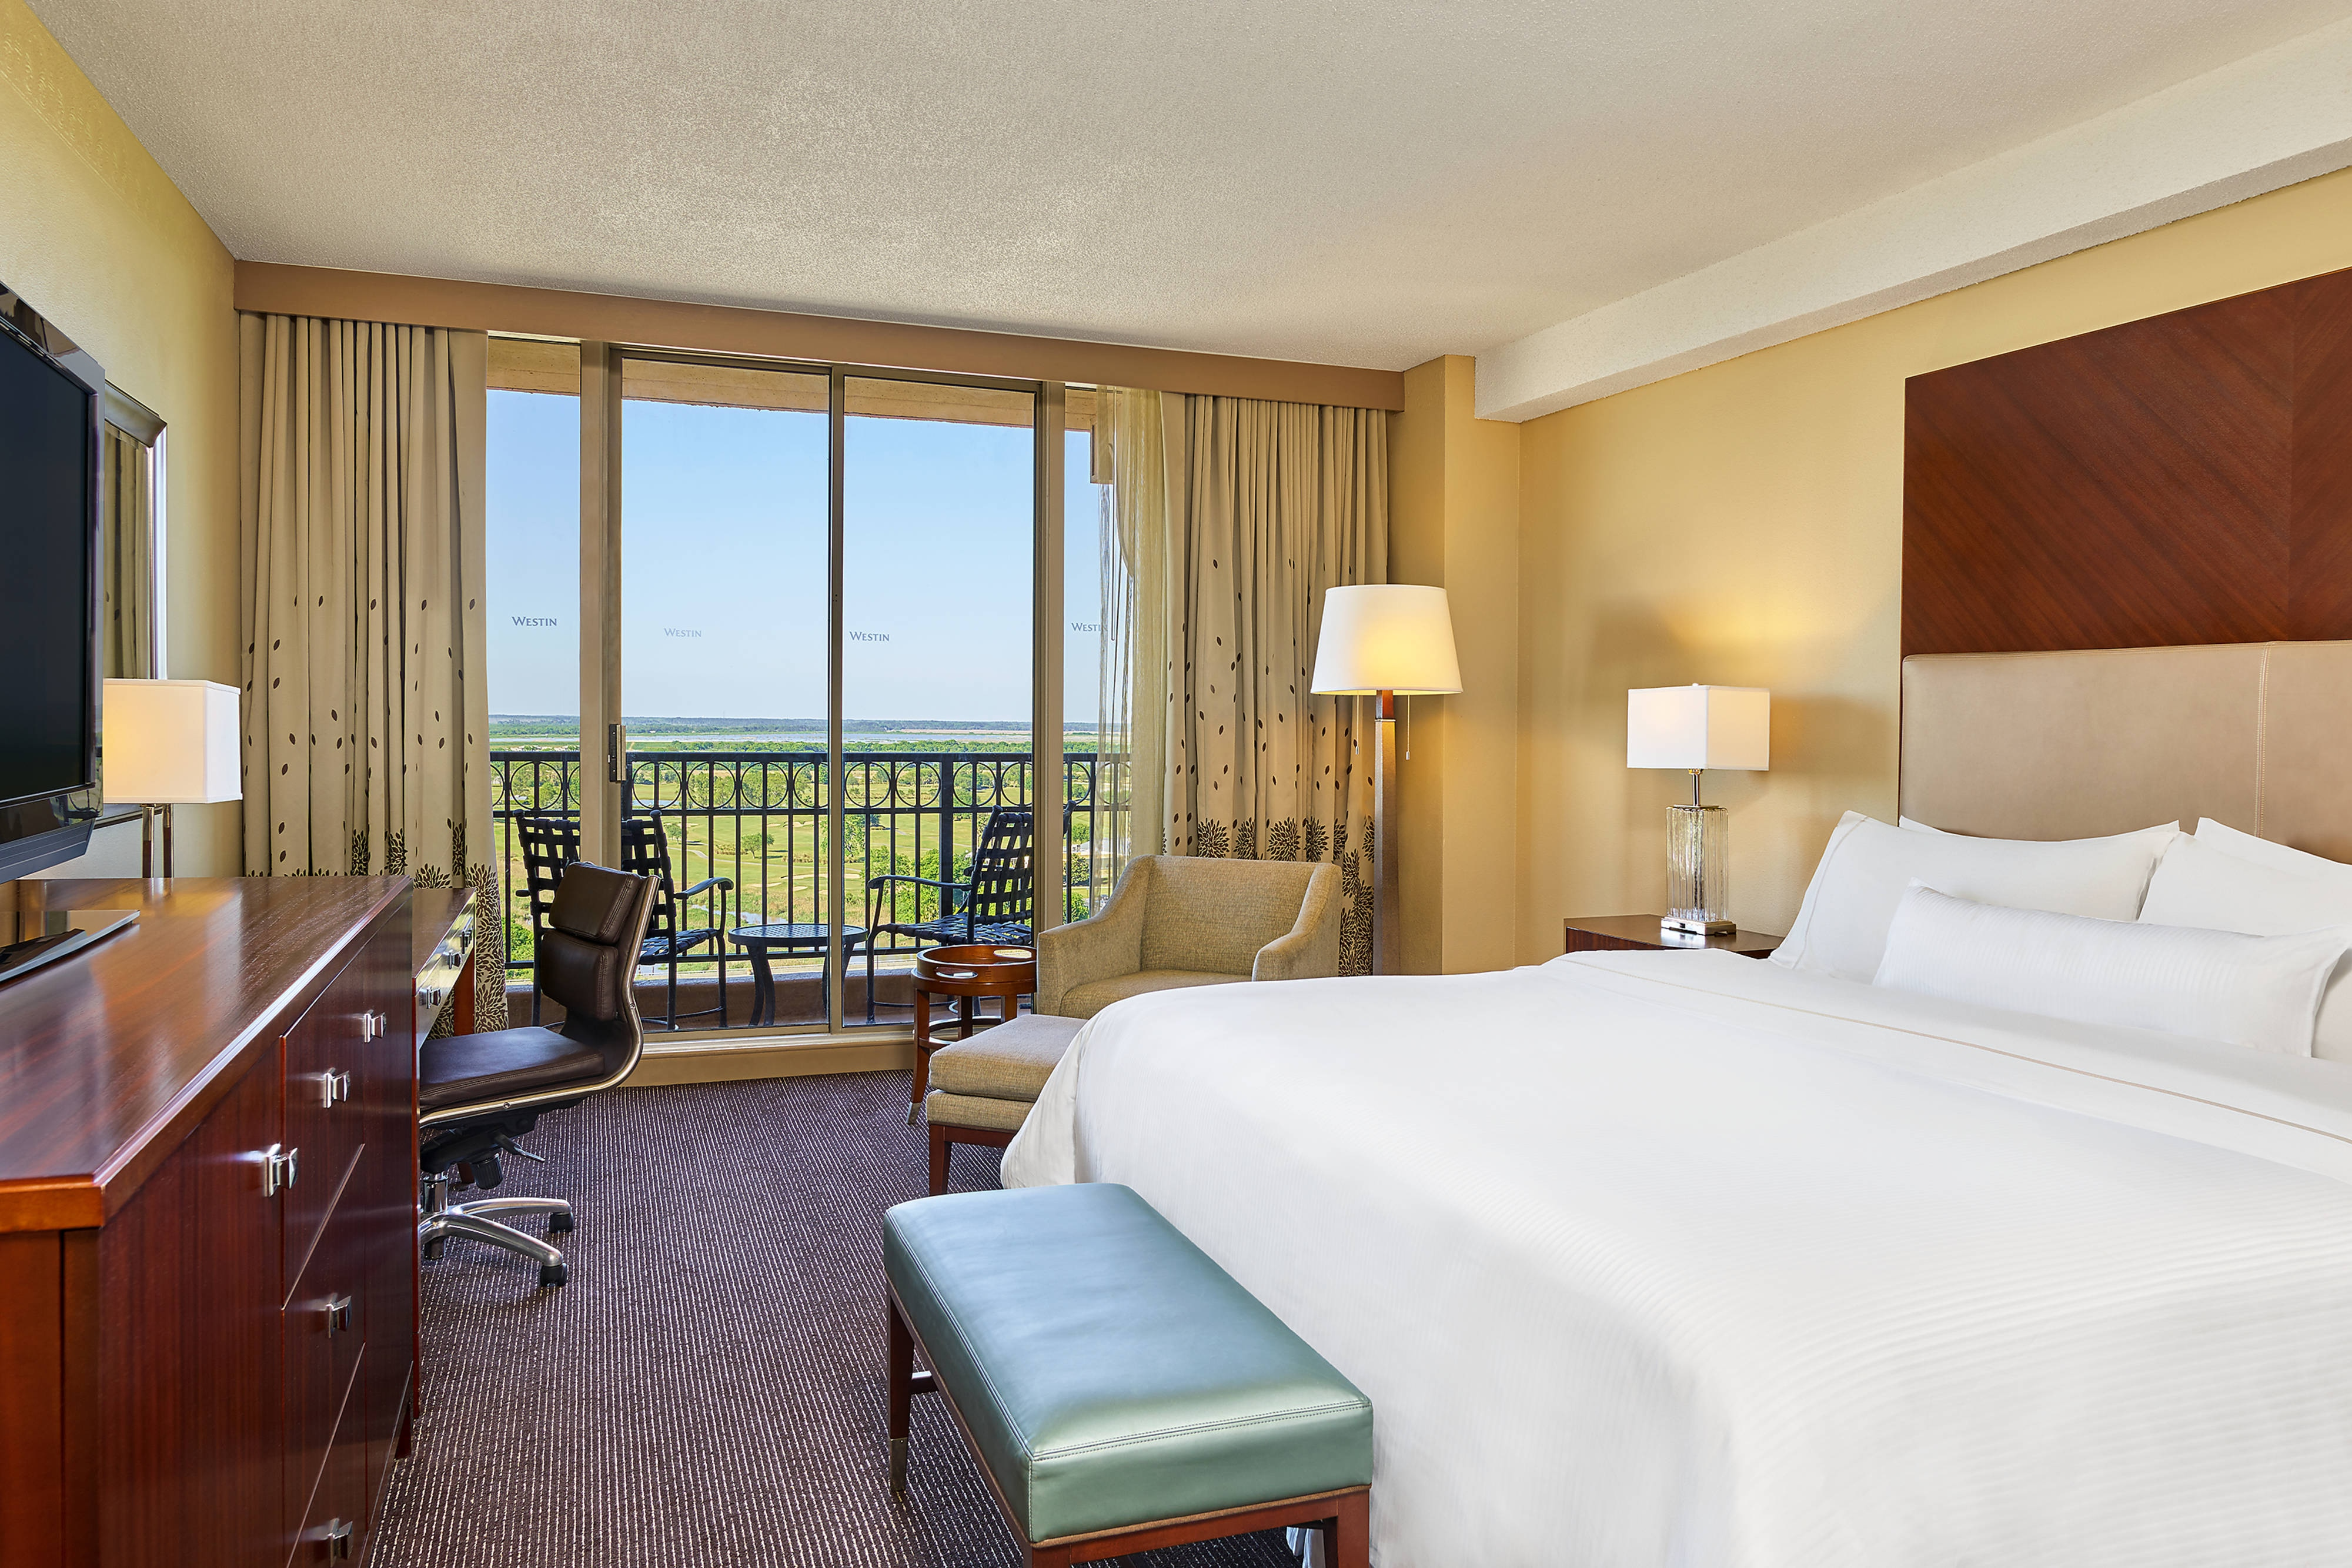 Golf View King Guest Room with balcony